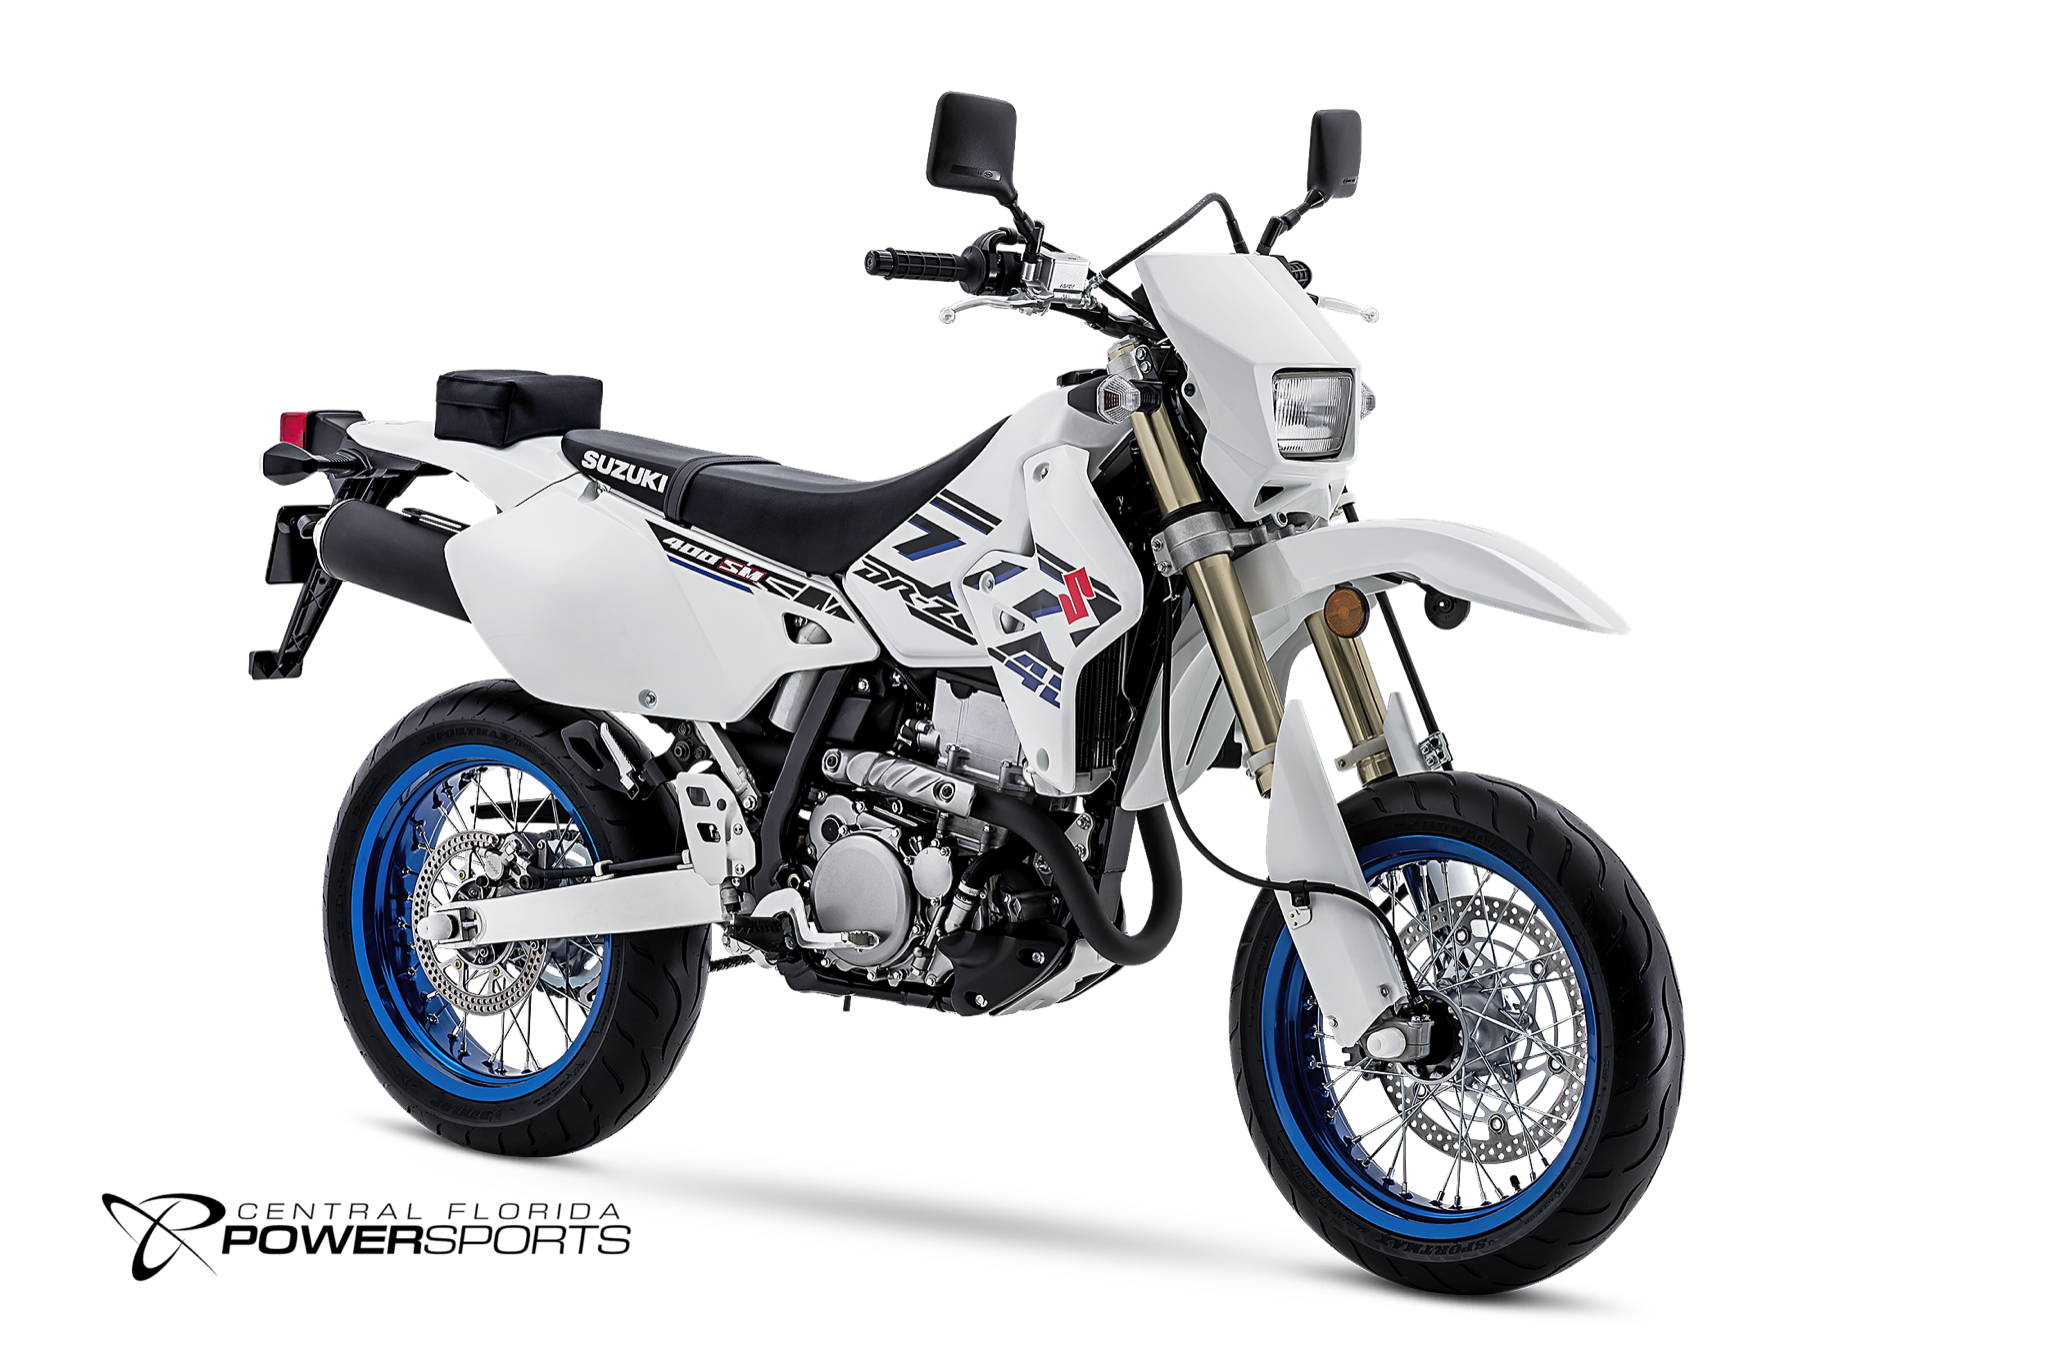 2017 suzuki dr-z400sm motorcycle for sale - orlando, fl bike